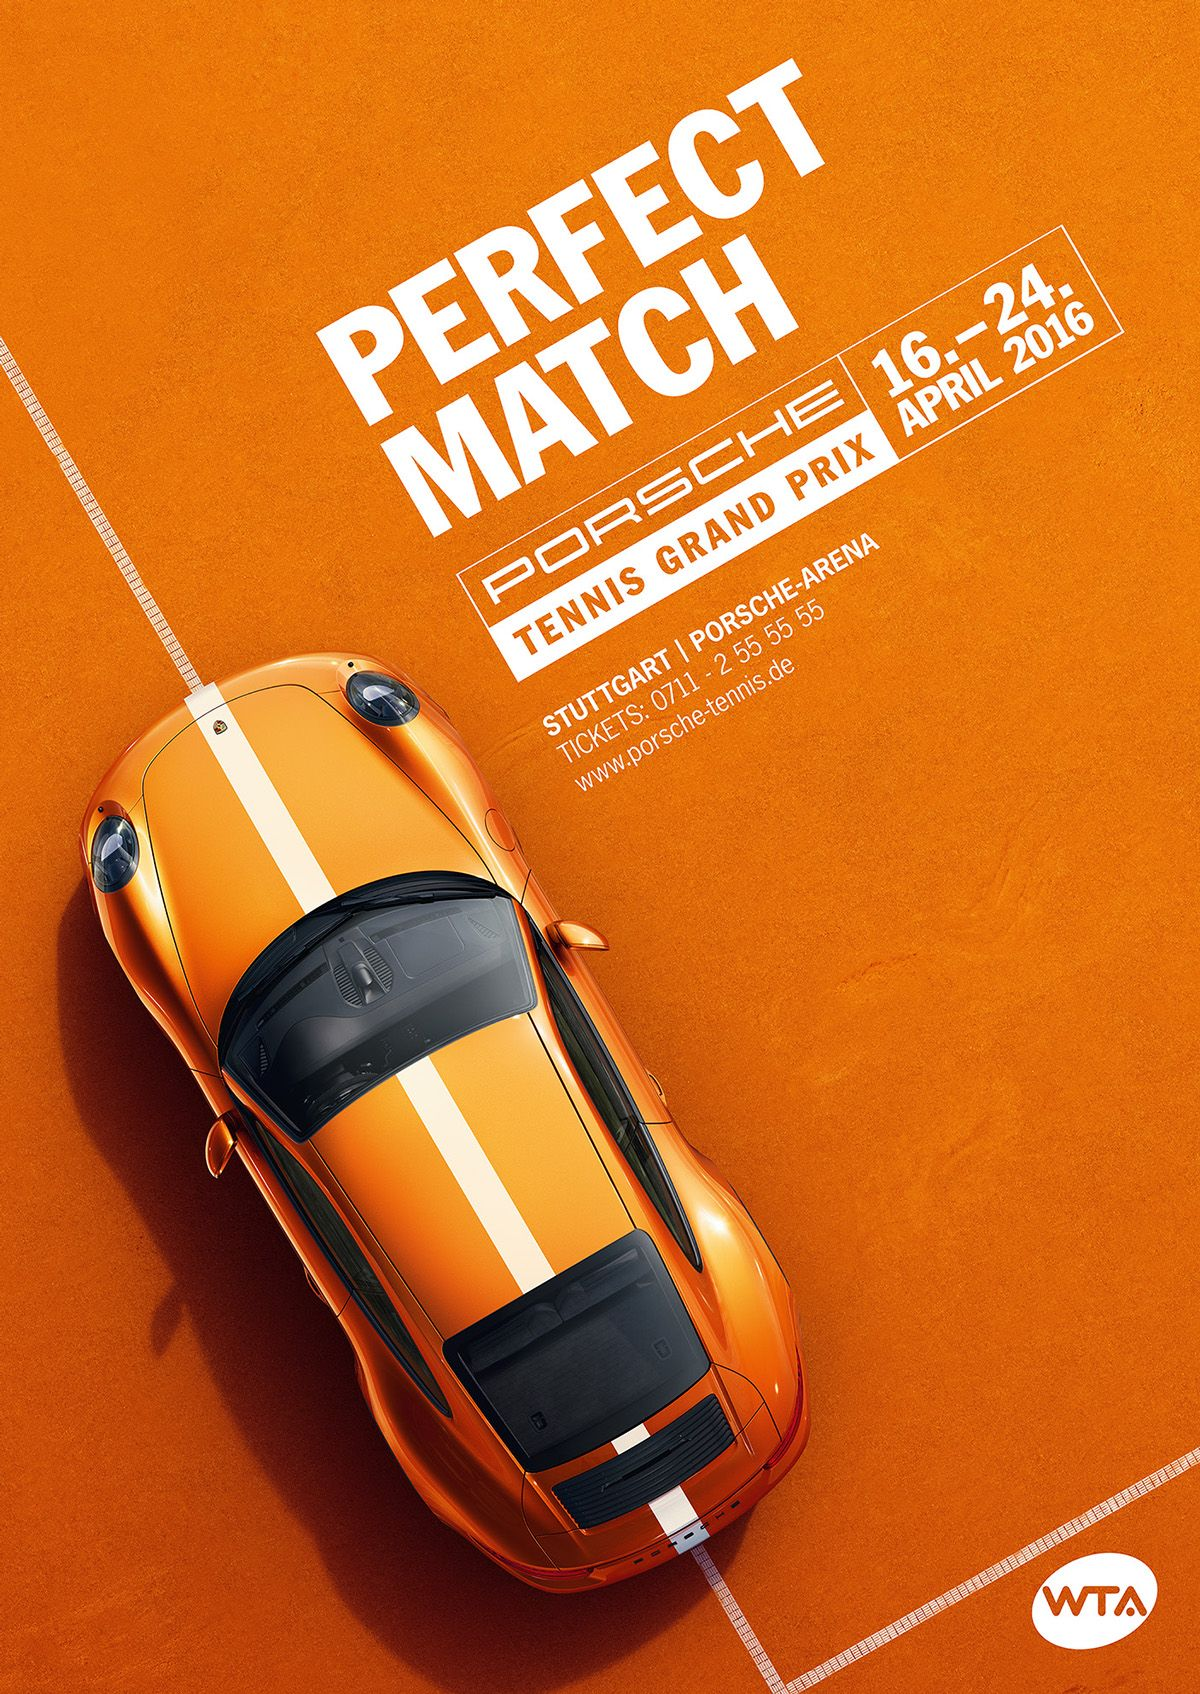 Porsche tennis grand prix 2016 by nicholas schurr for Ad designs